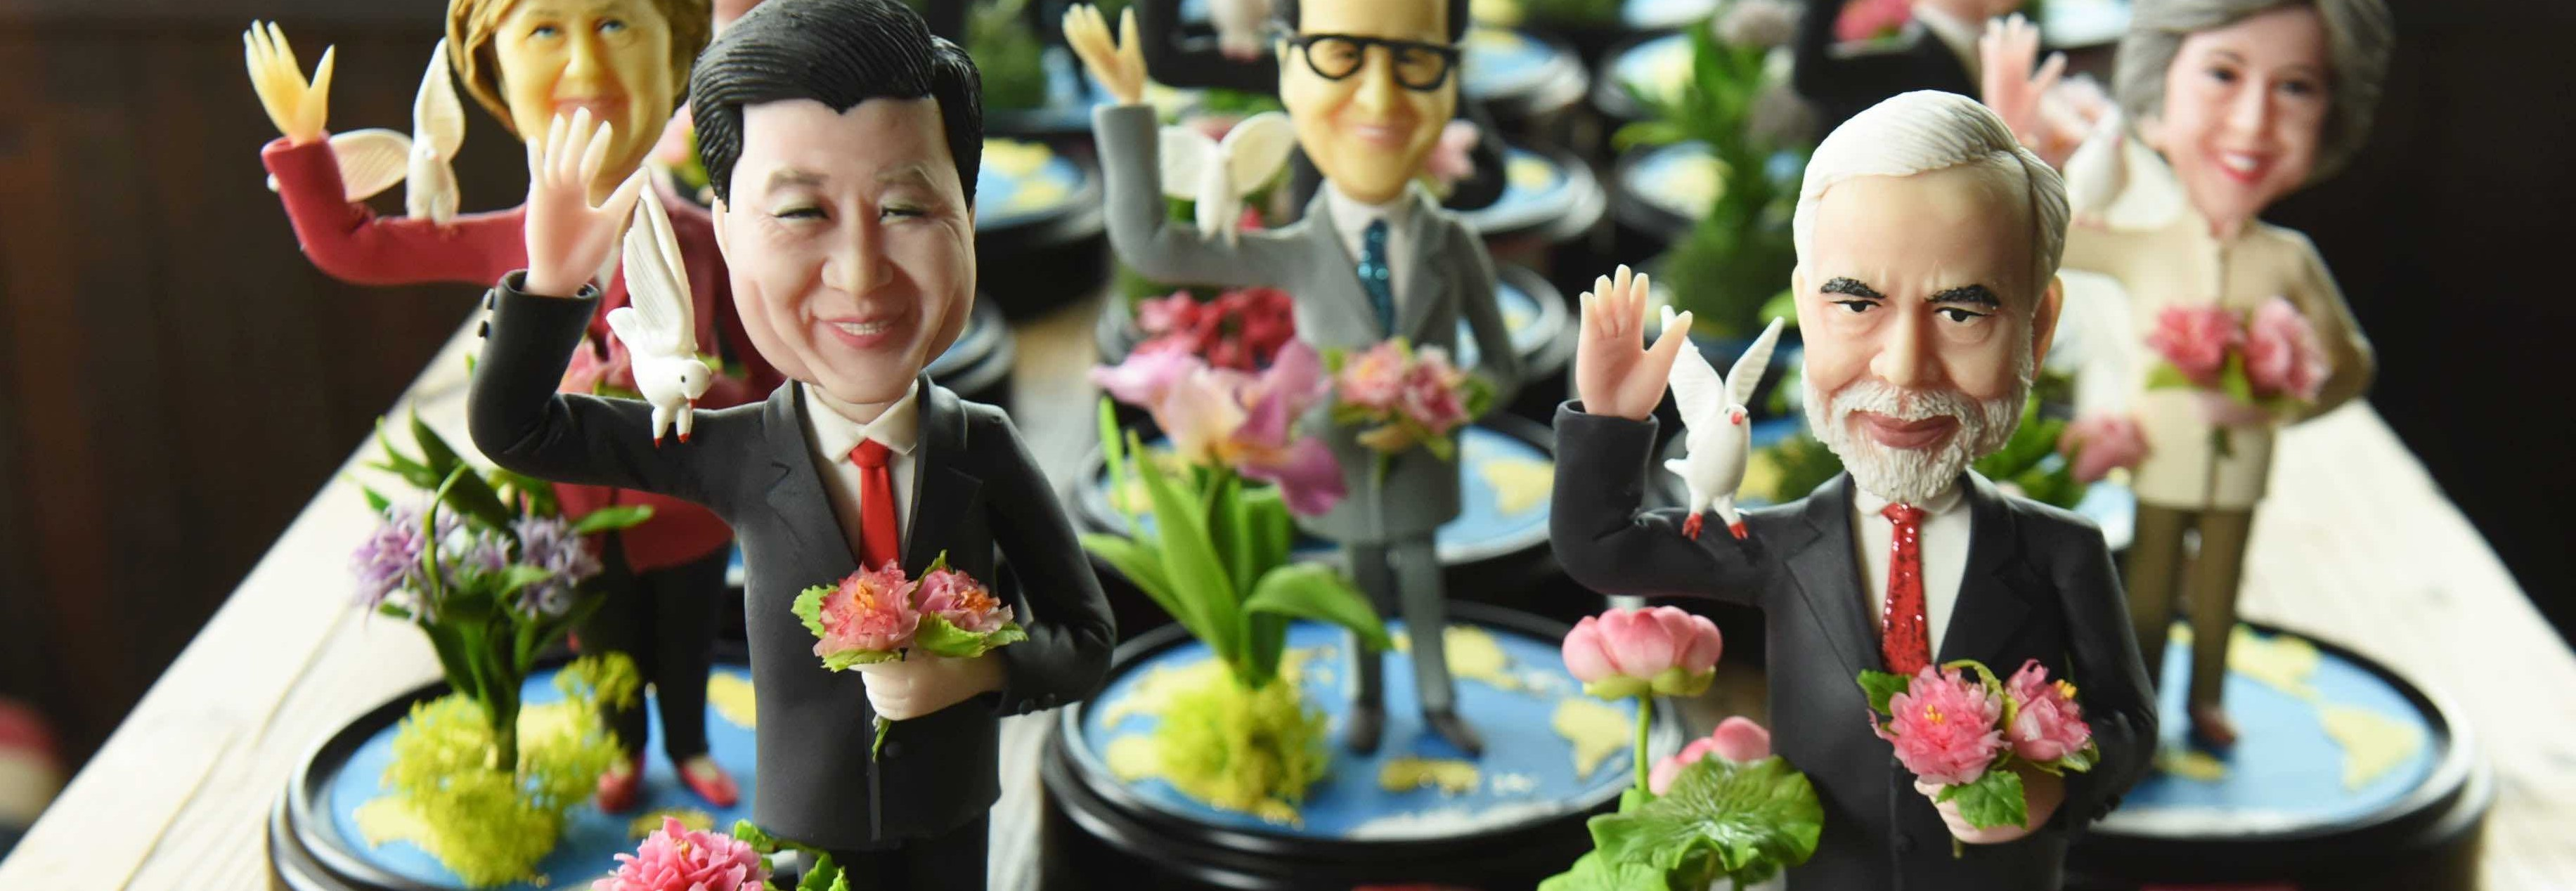 Figurines of Chinese President Xi Jinping and Indian Prime Minister Narendra Modi made by artist Wu Xiaoli for the 2016 G20 Hangzhou Summit. (Photo: Long Wei/Getty Images)